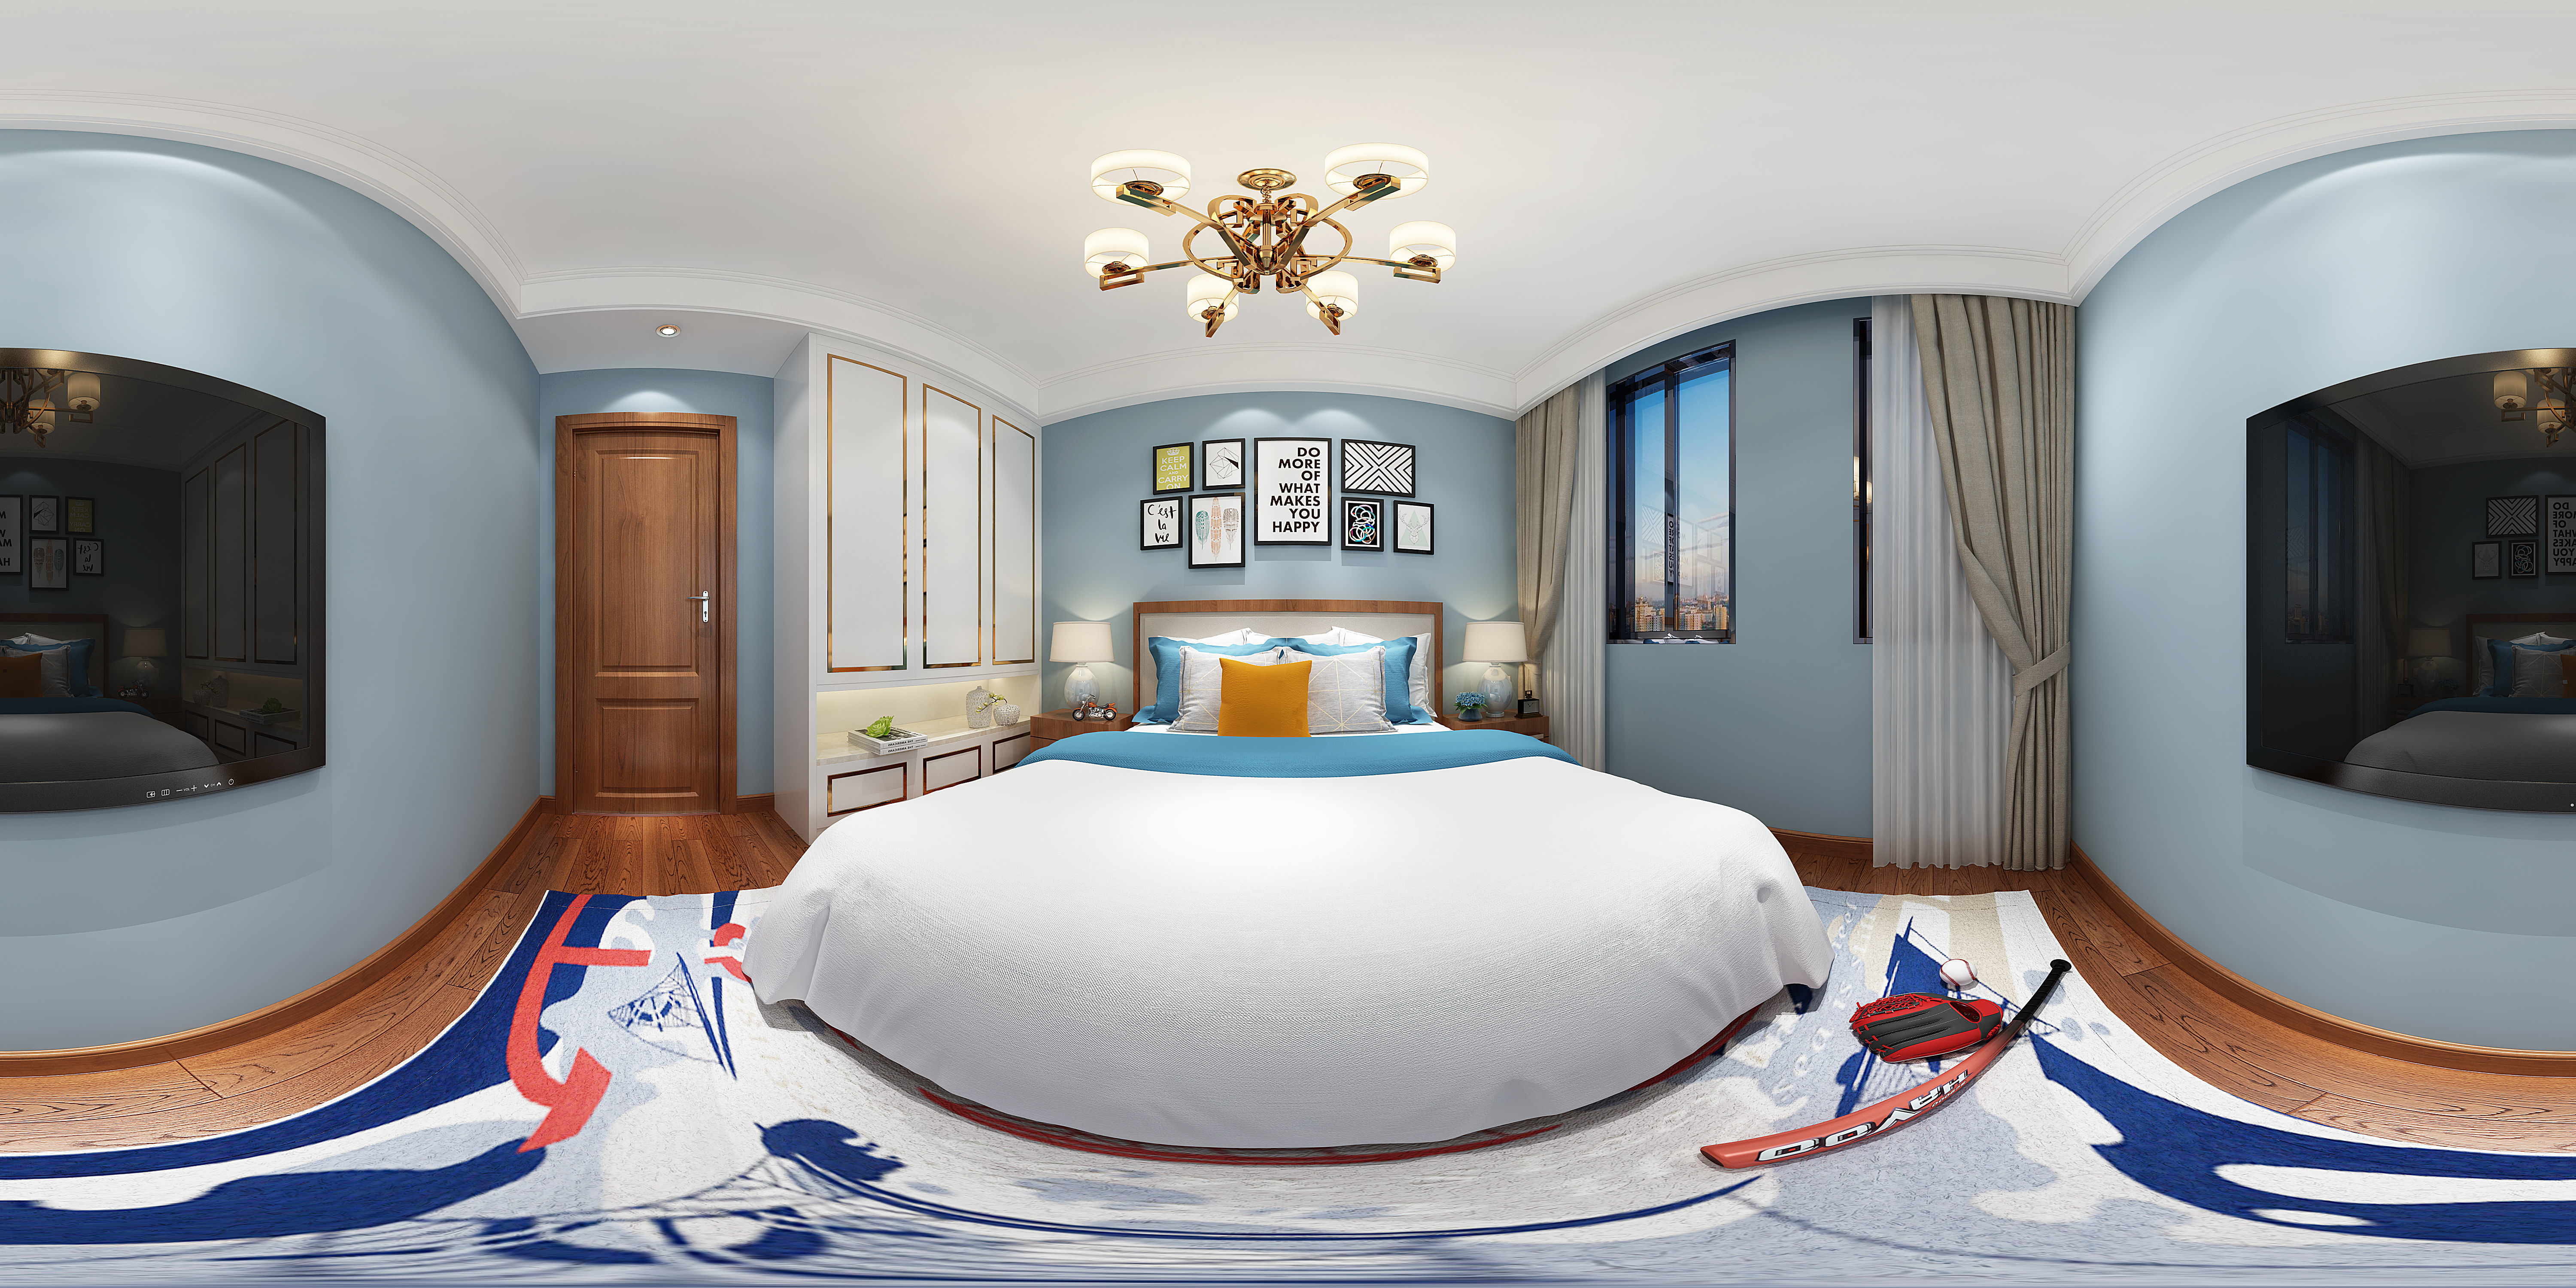 3D Model American Style Bedroom Inspirational 3ds Max Interior Models